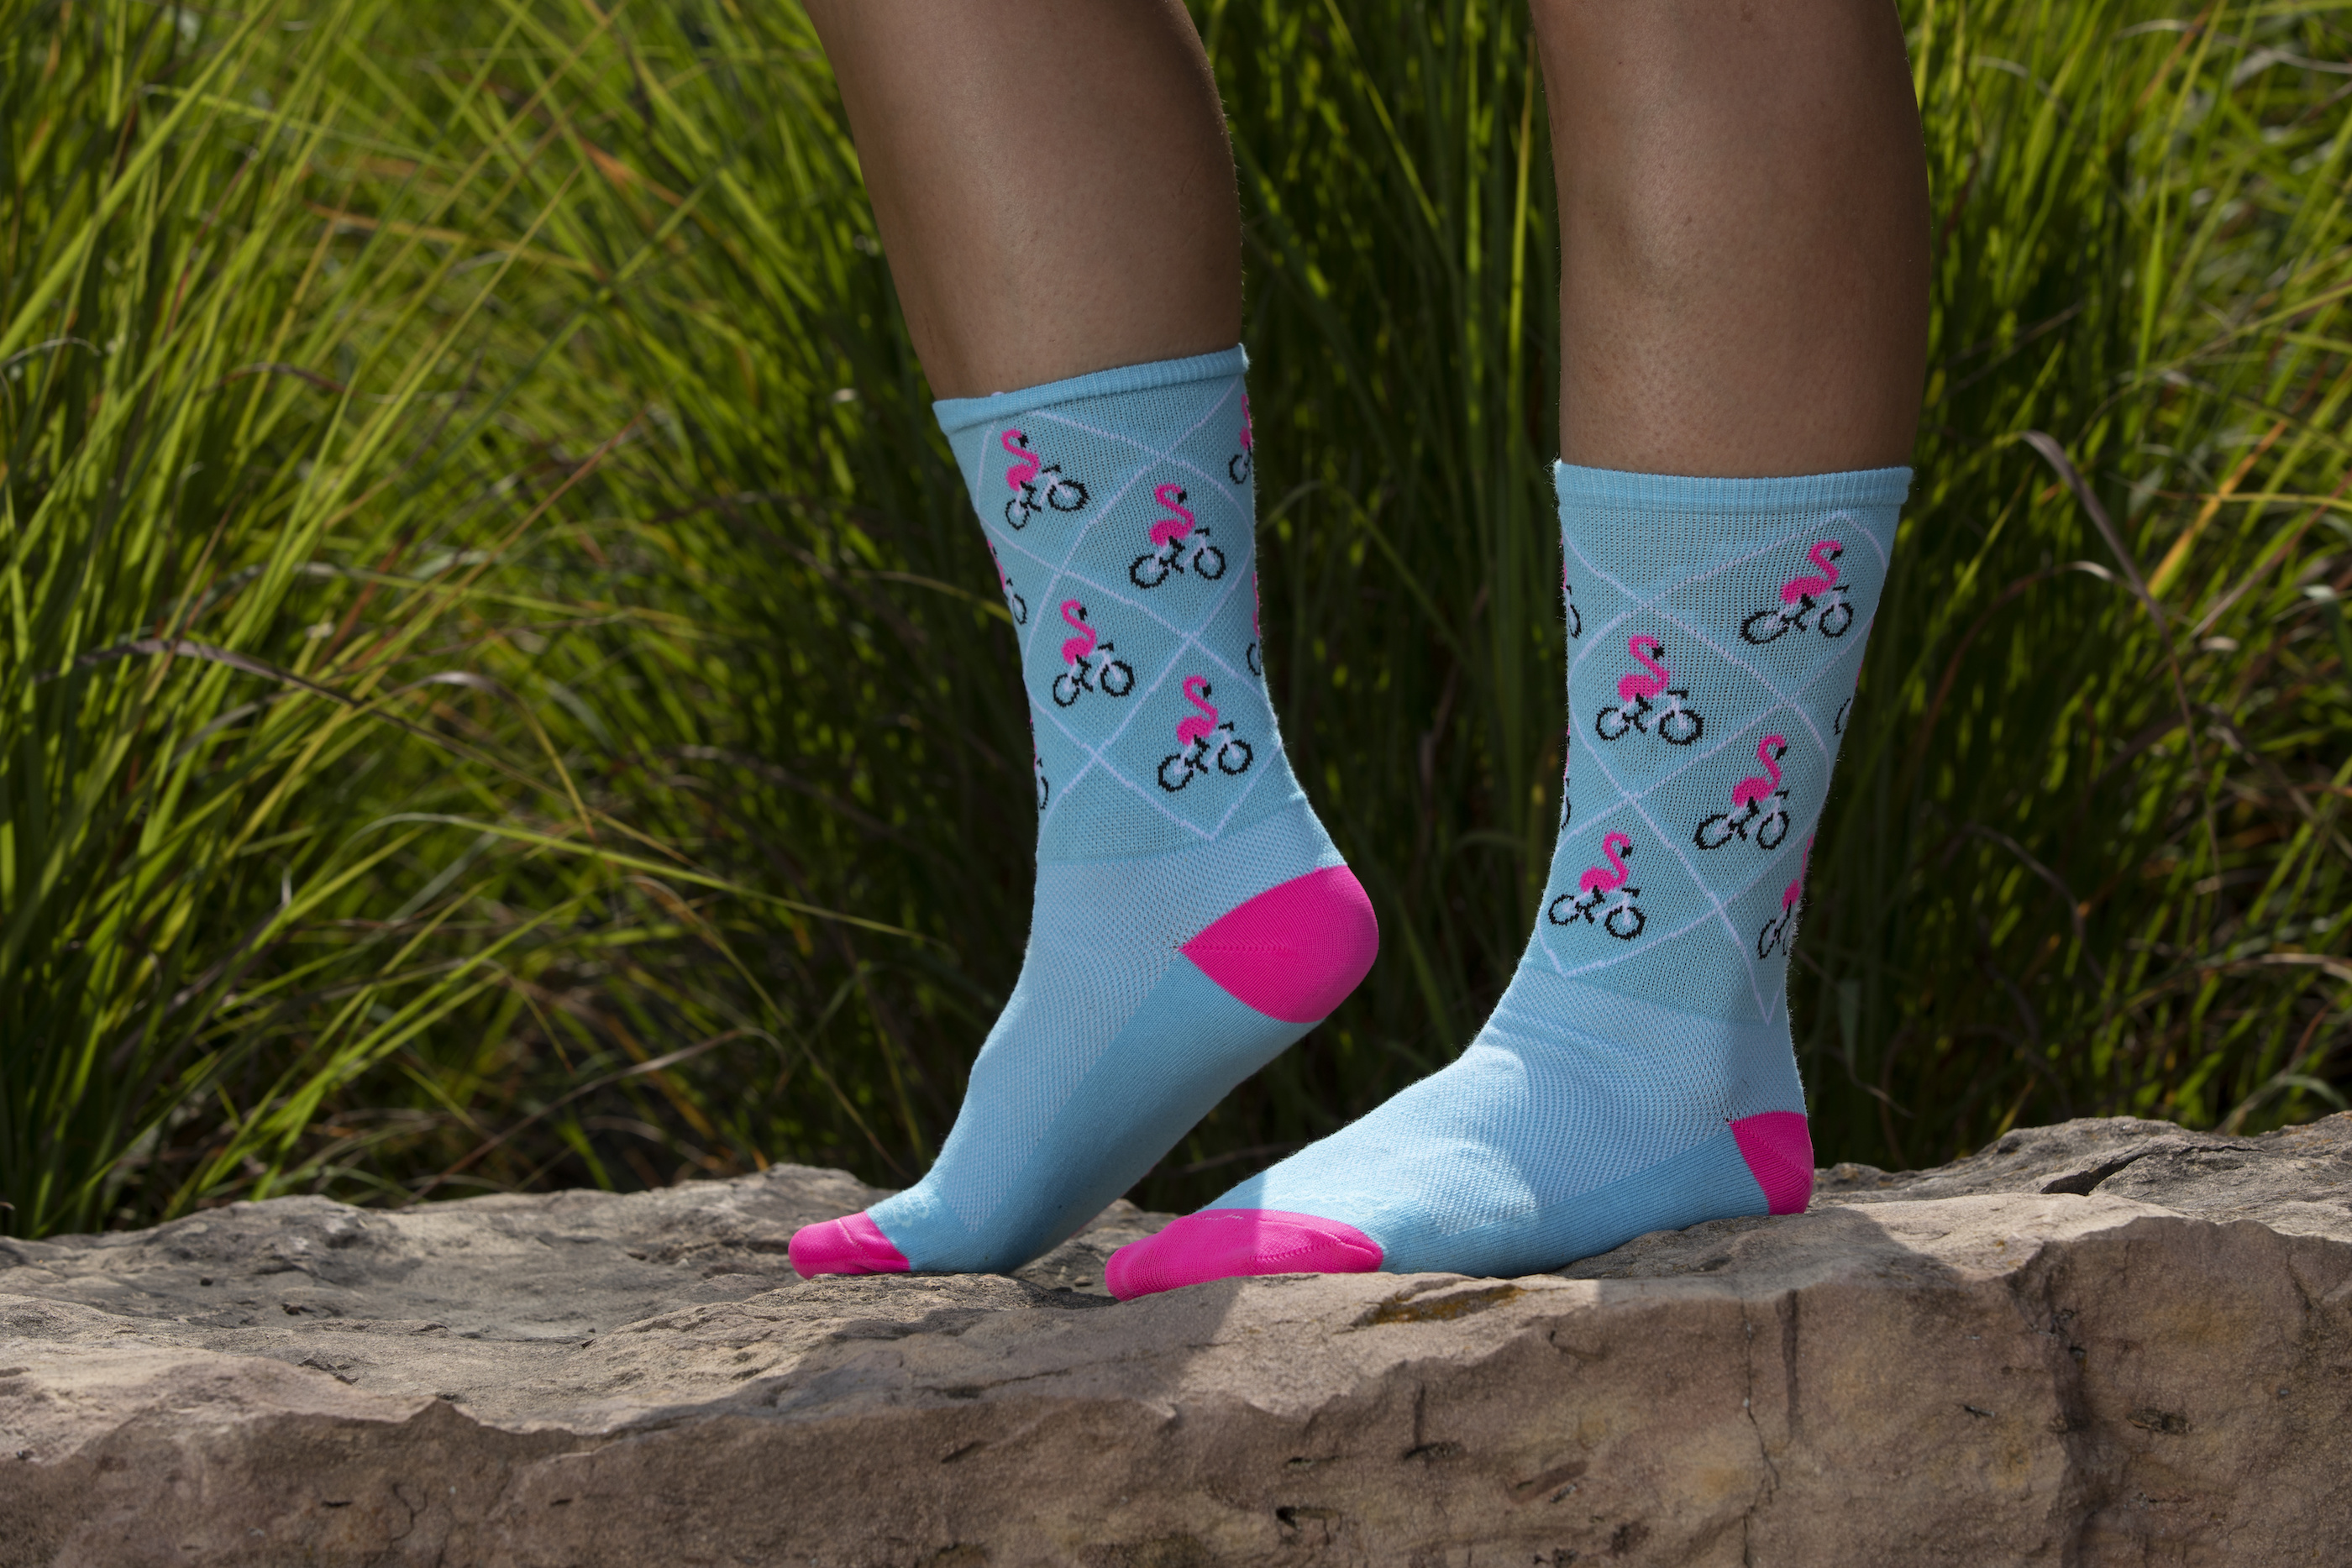 iSSi Flamingo Socks posed